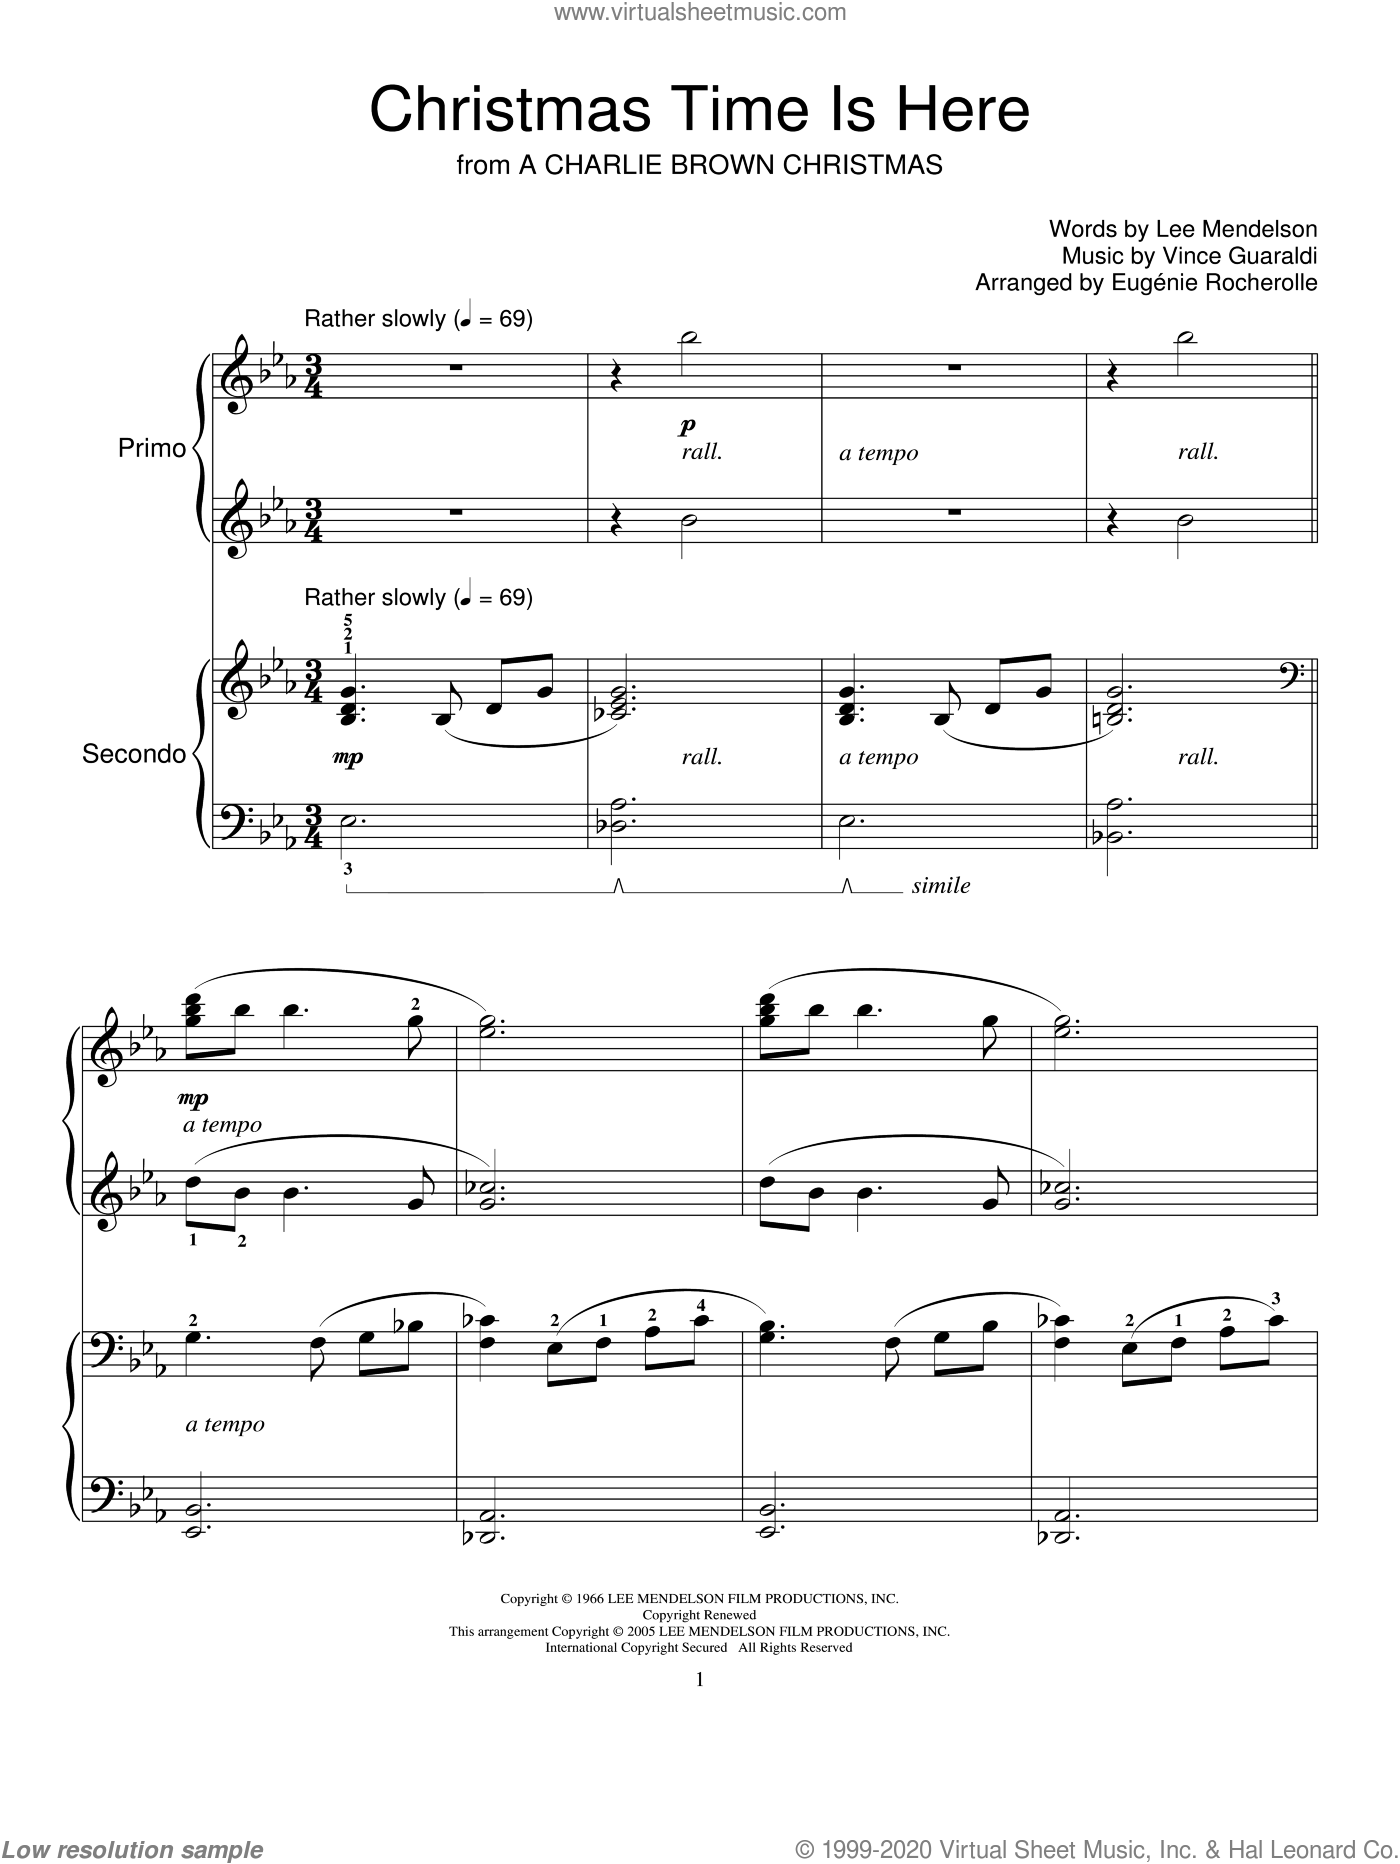 Guaraldi - Christmas Time Is Here sheet music for piano four hands